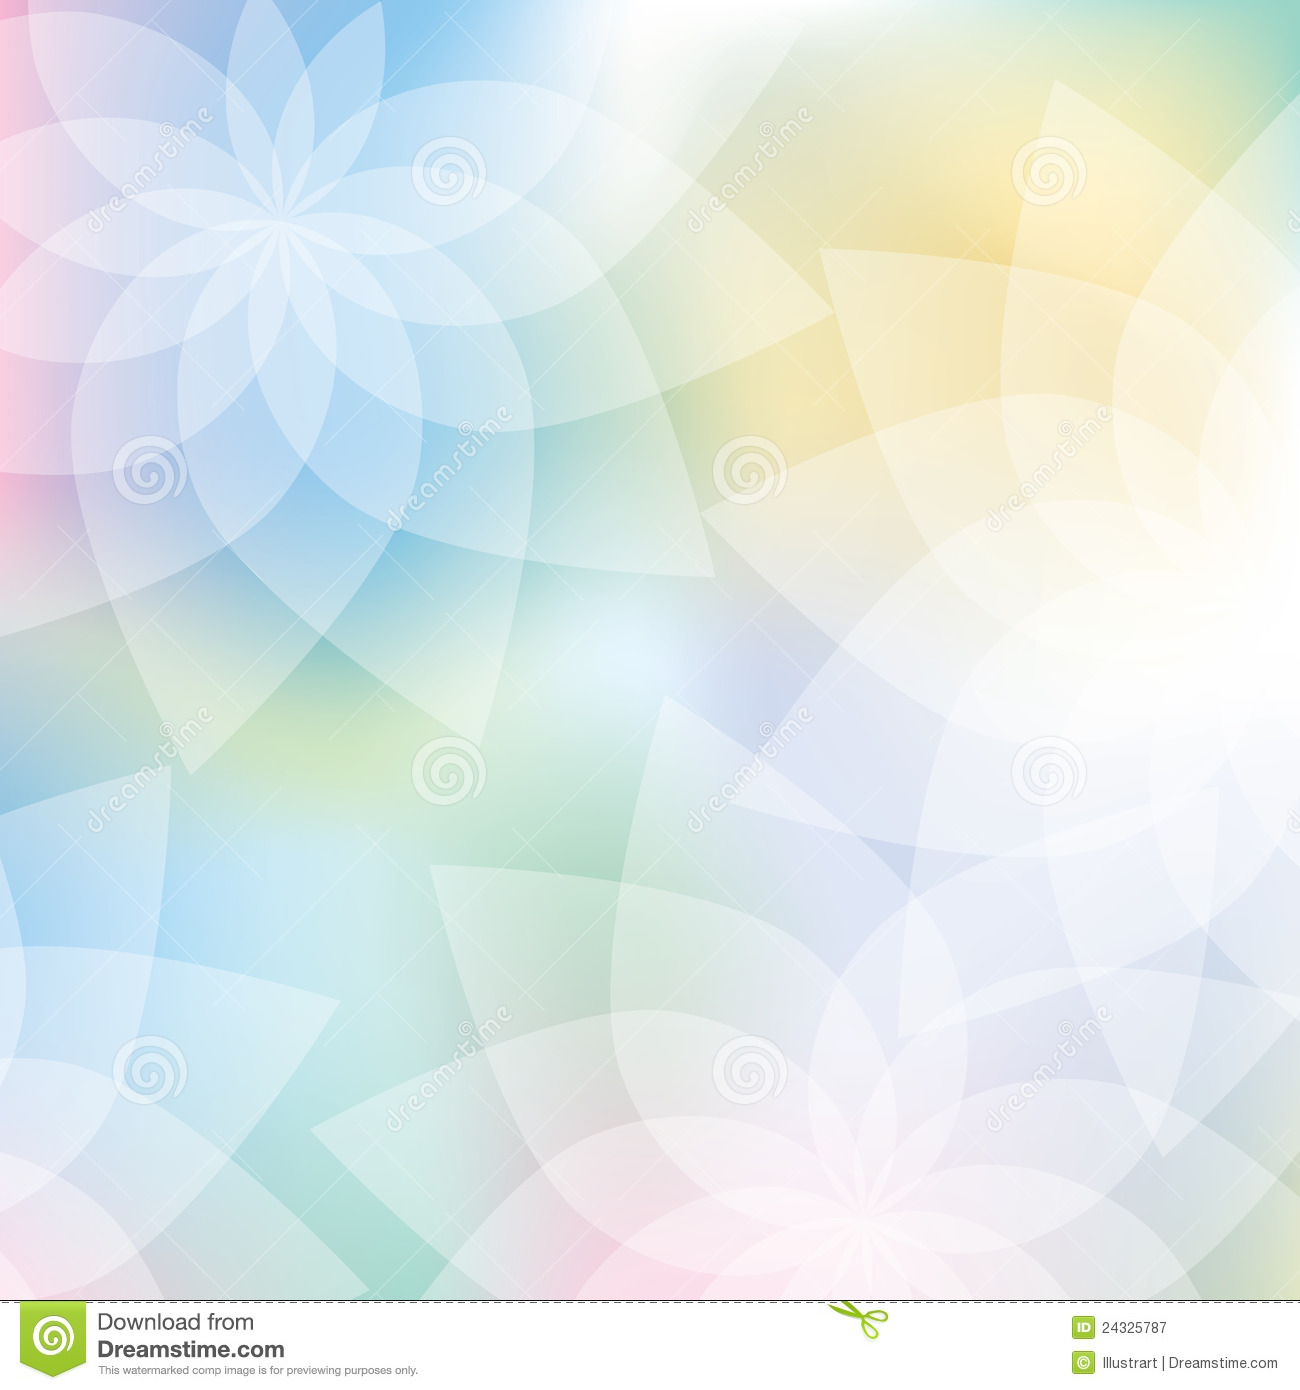 Floral Print Iphone Wallpaper Floral Background In Pastel Colors Stock Vector